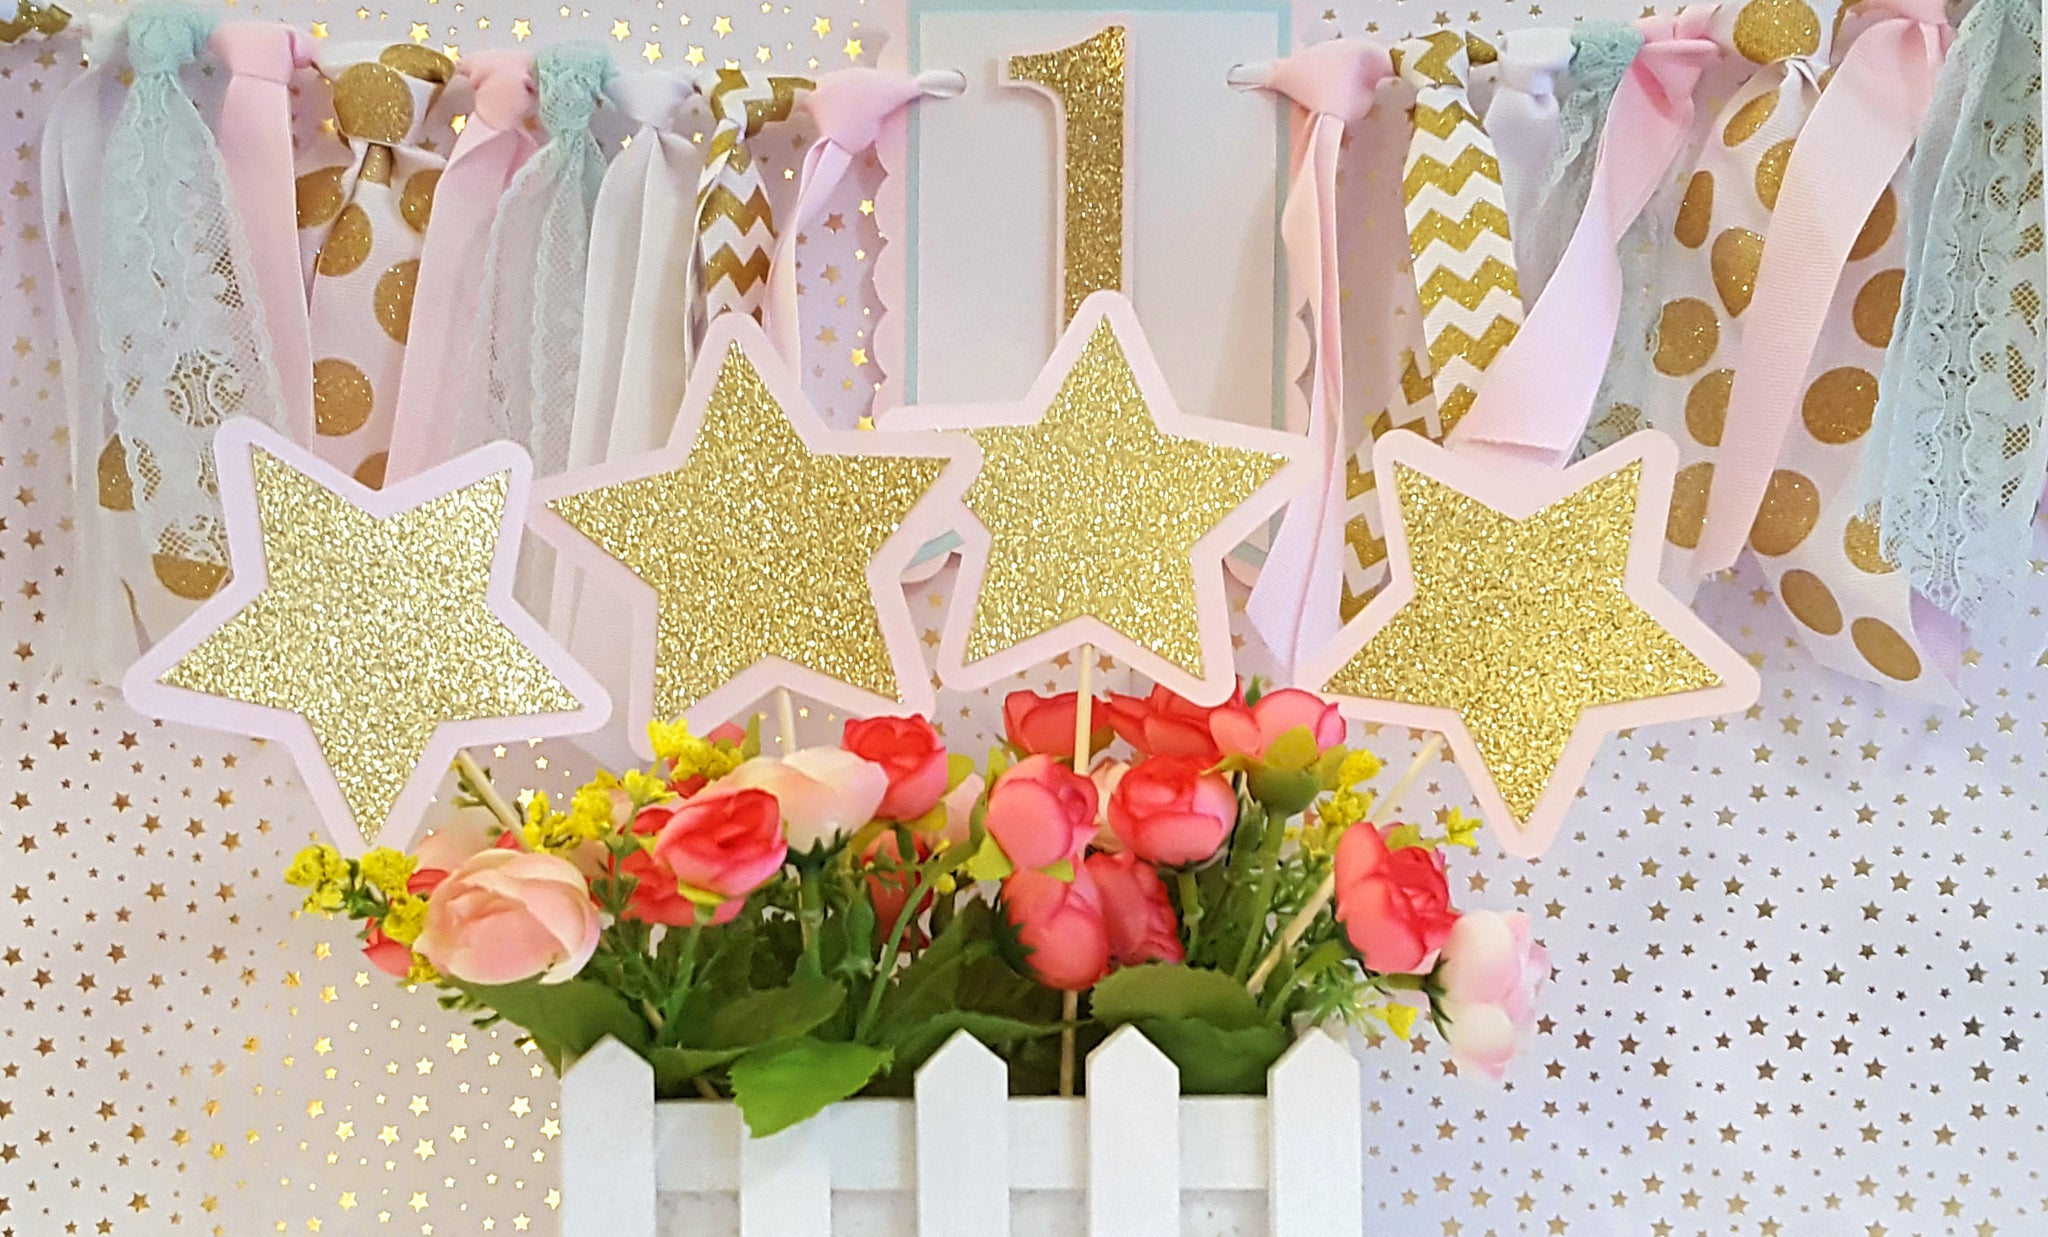 Pink & Gold Stars Centerpiece or Table Decor for Birthday or Baby Shower, Twinkle Little Star Theme. Handcrafted in 3-5 Business Days